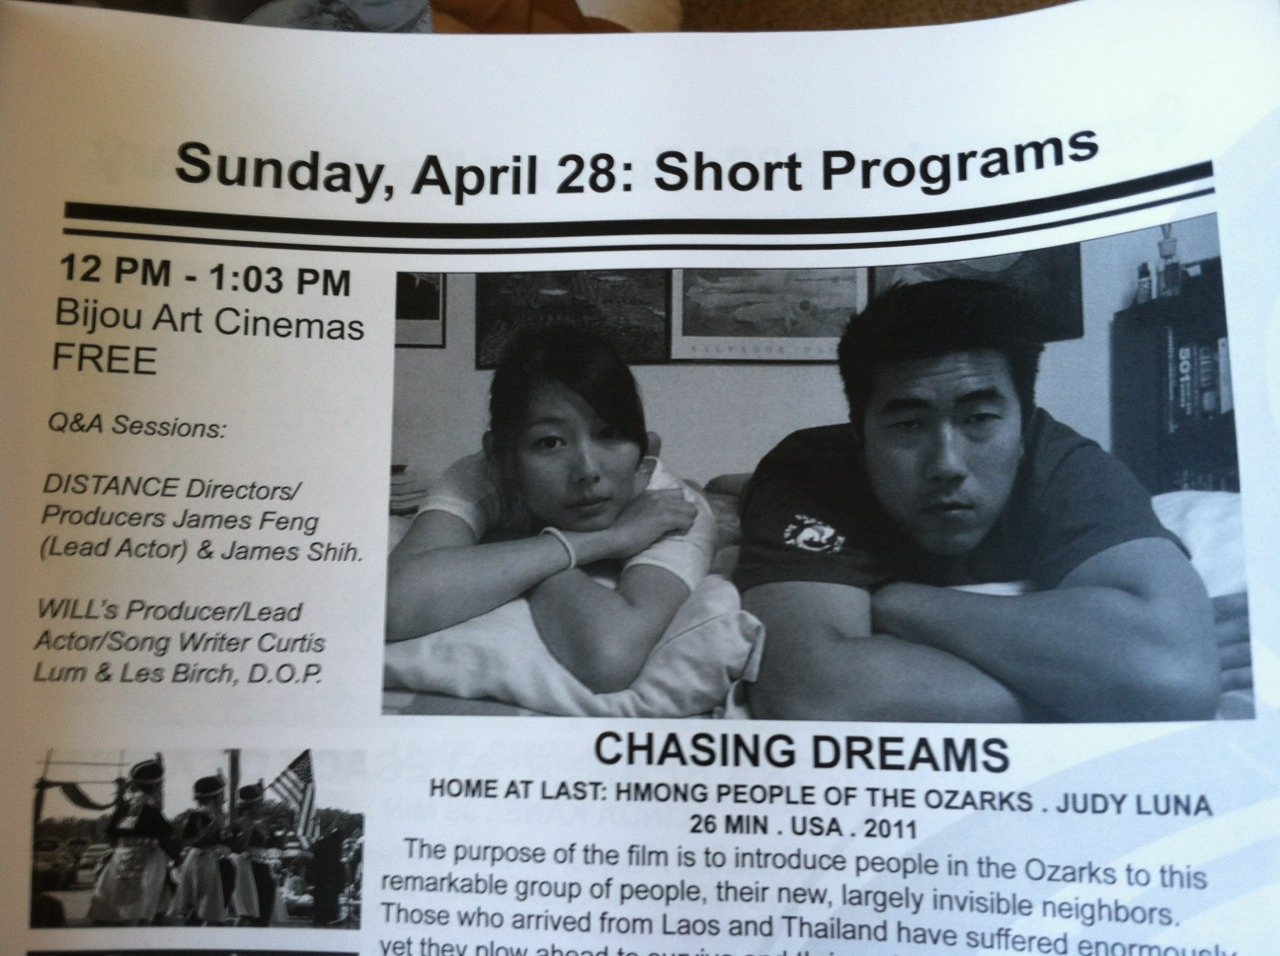 Oregon friends! Distance playing at The Bijou Theatre in Eugene, OR! Tomorrow 4/28, 12p at DisOrient film festival. I'll see you there!